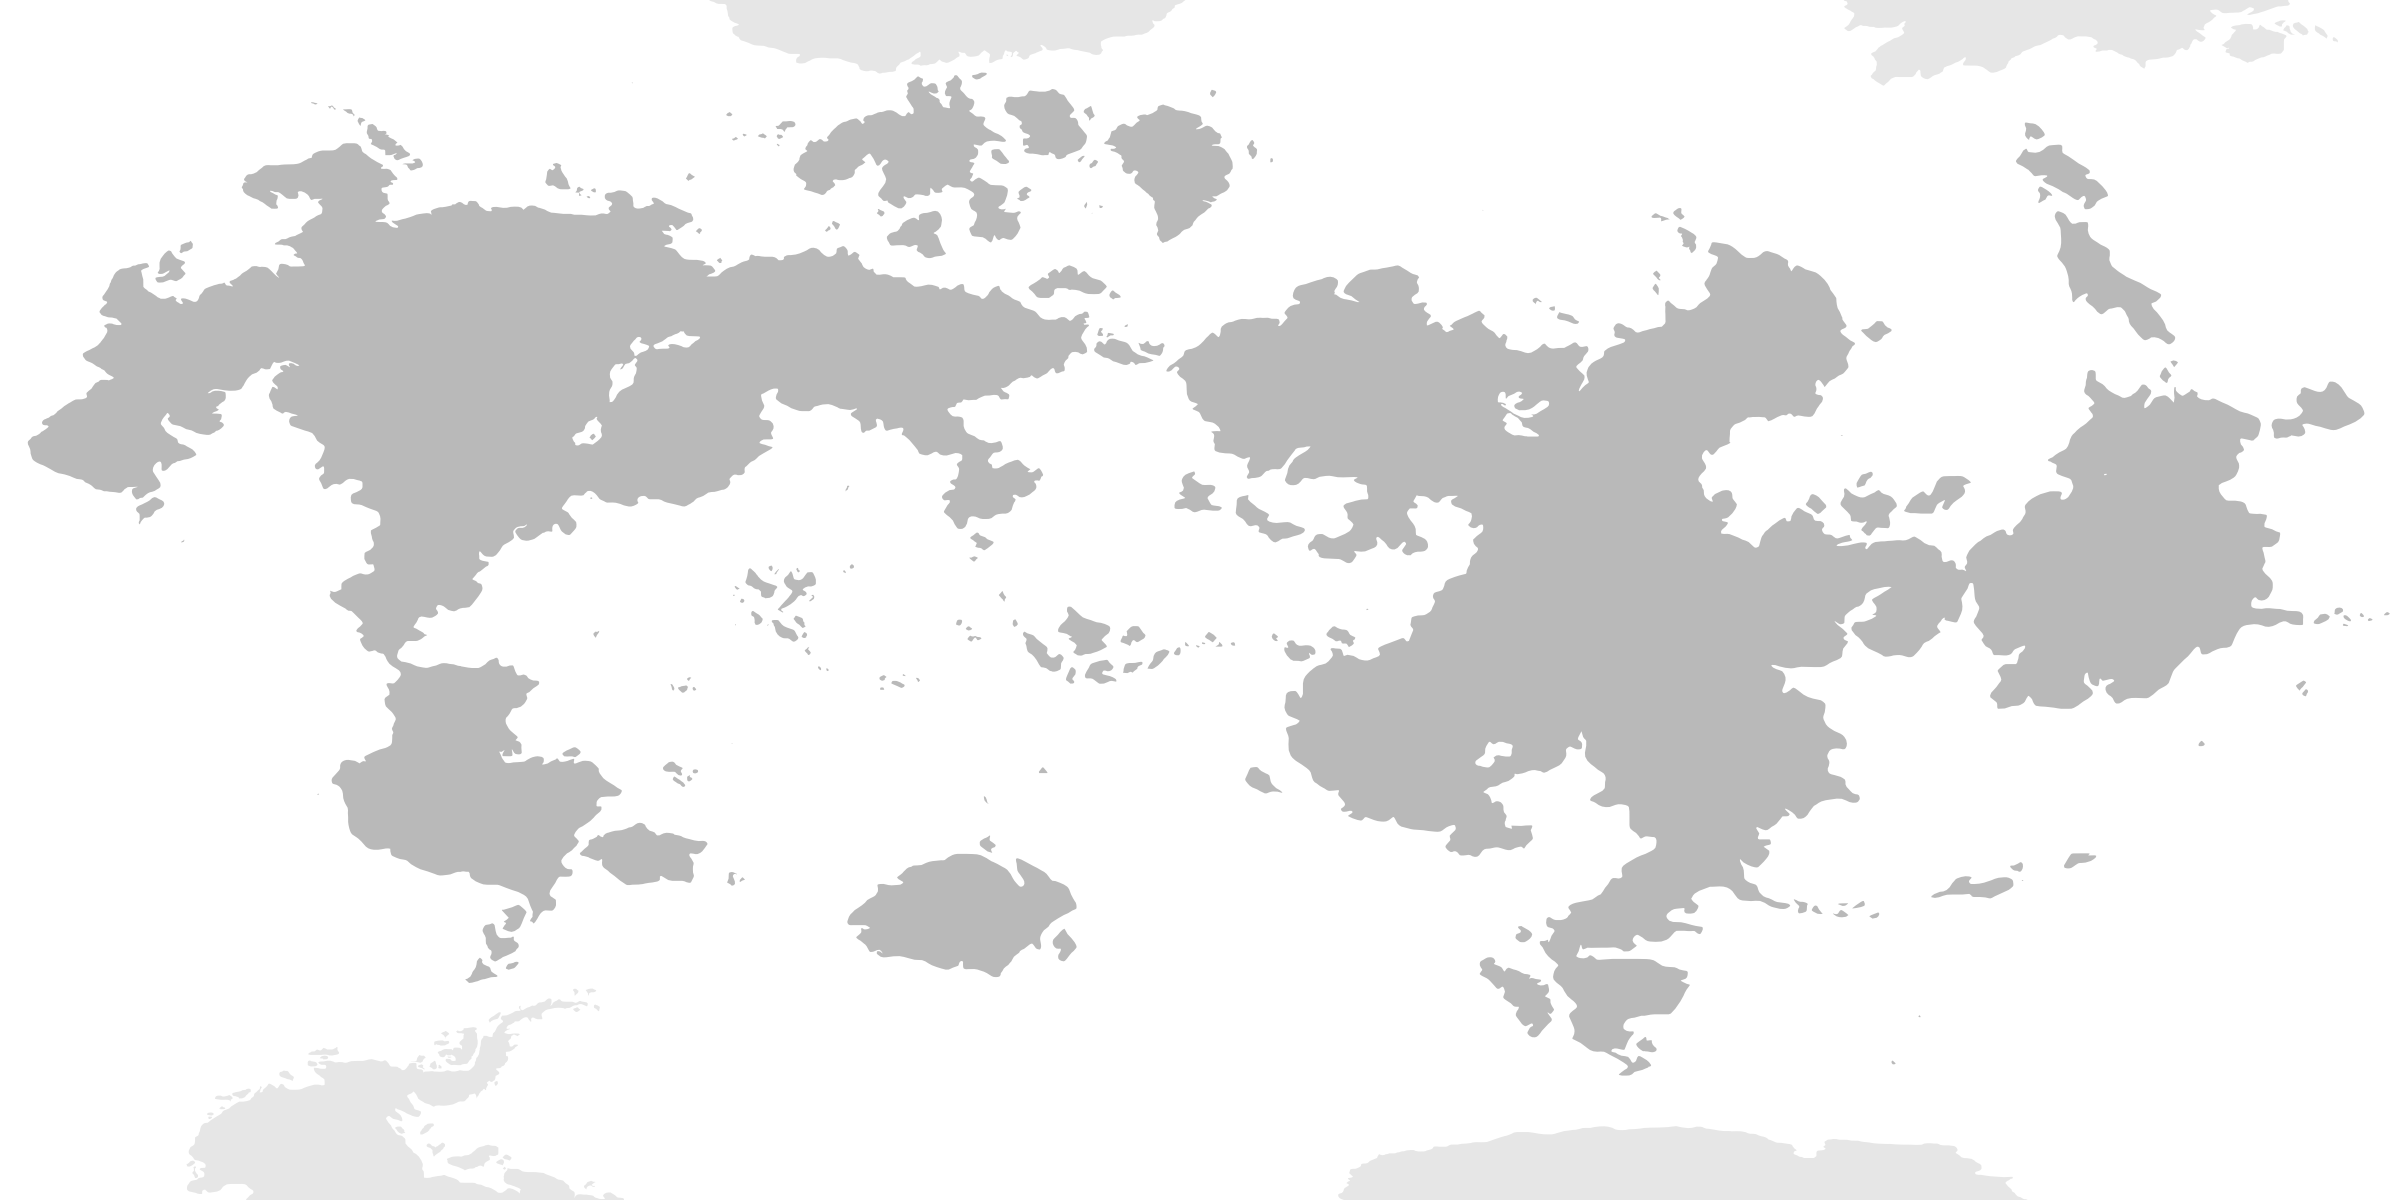 World Map Blank Without Borders. Blank World Maps  Trooper